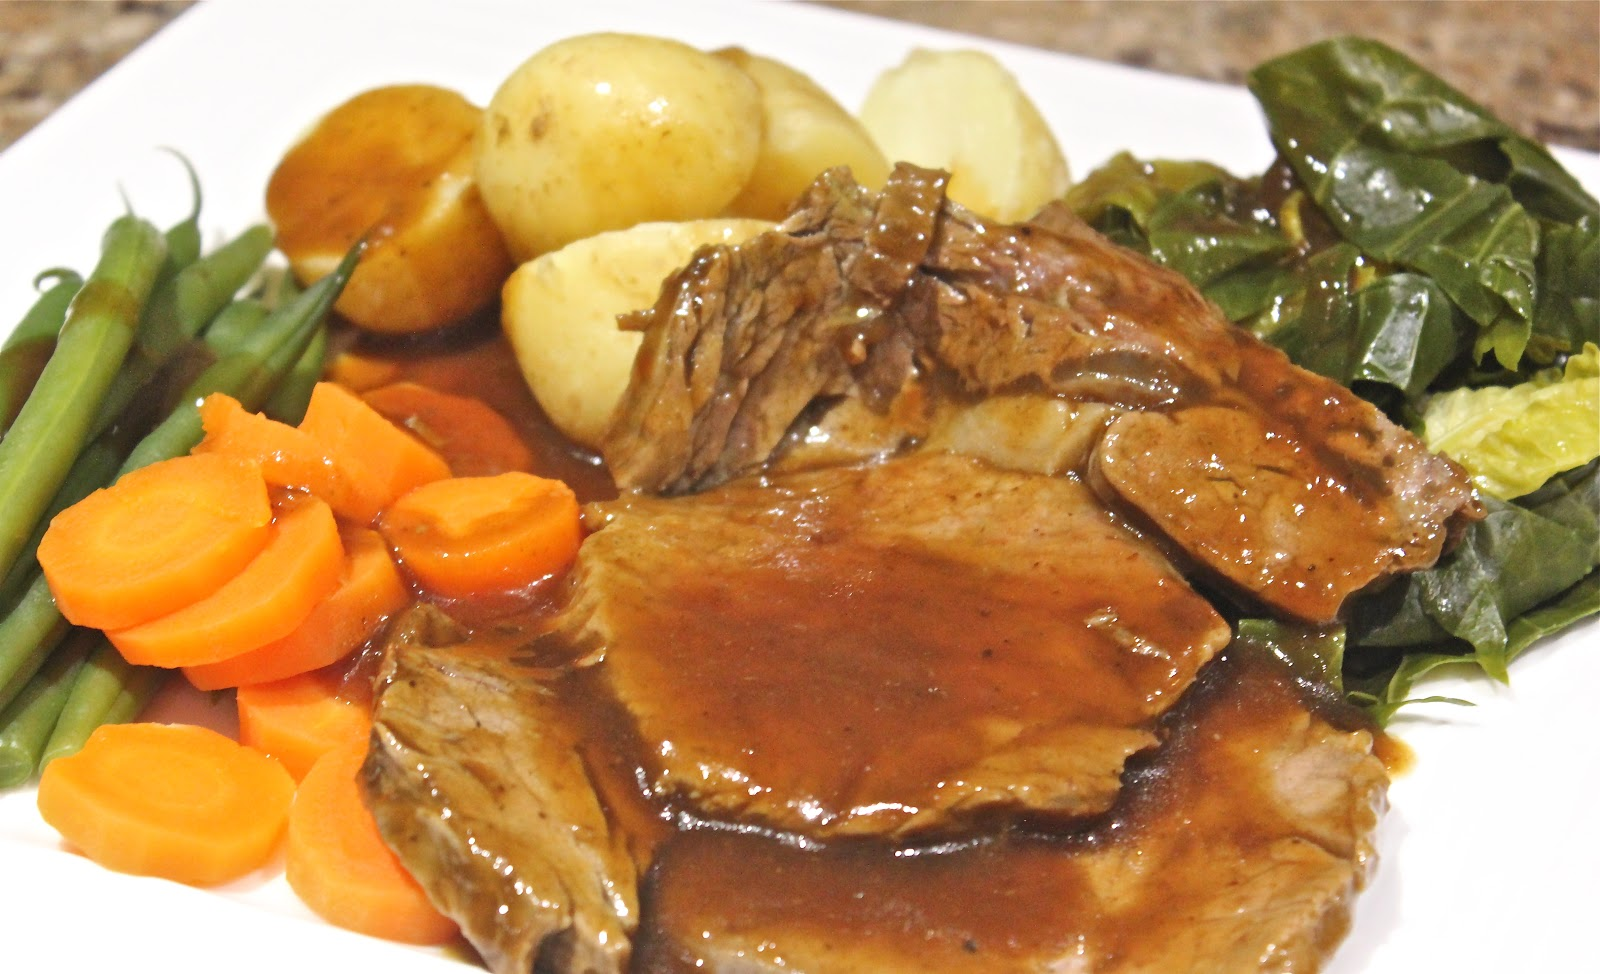 ROAST BEEF DINNER - forget dieting forever